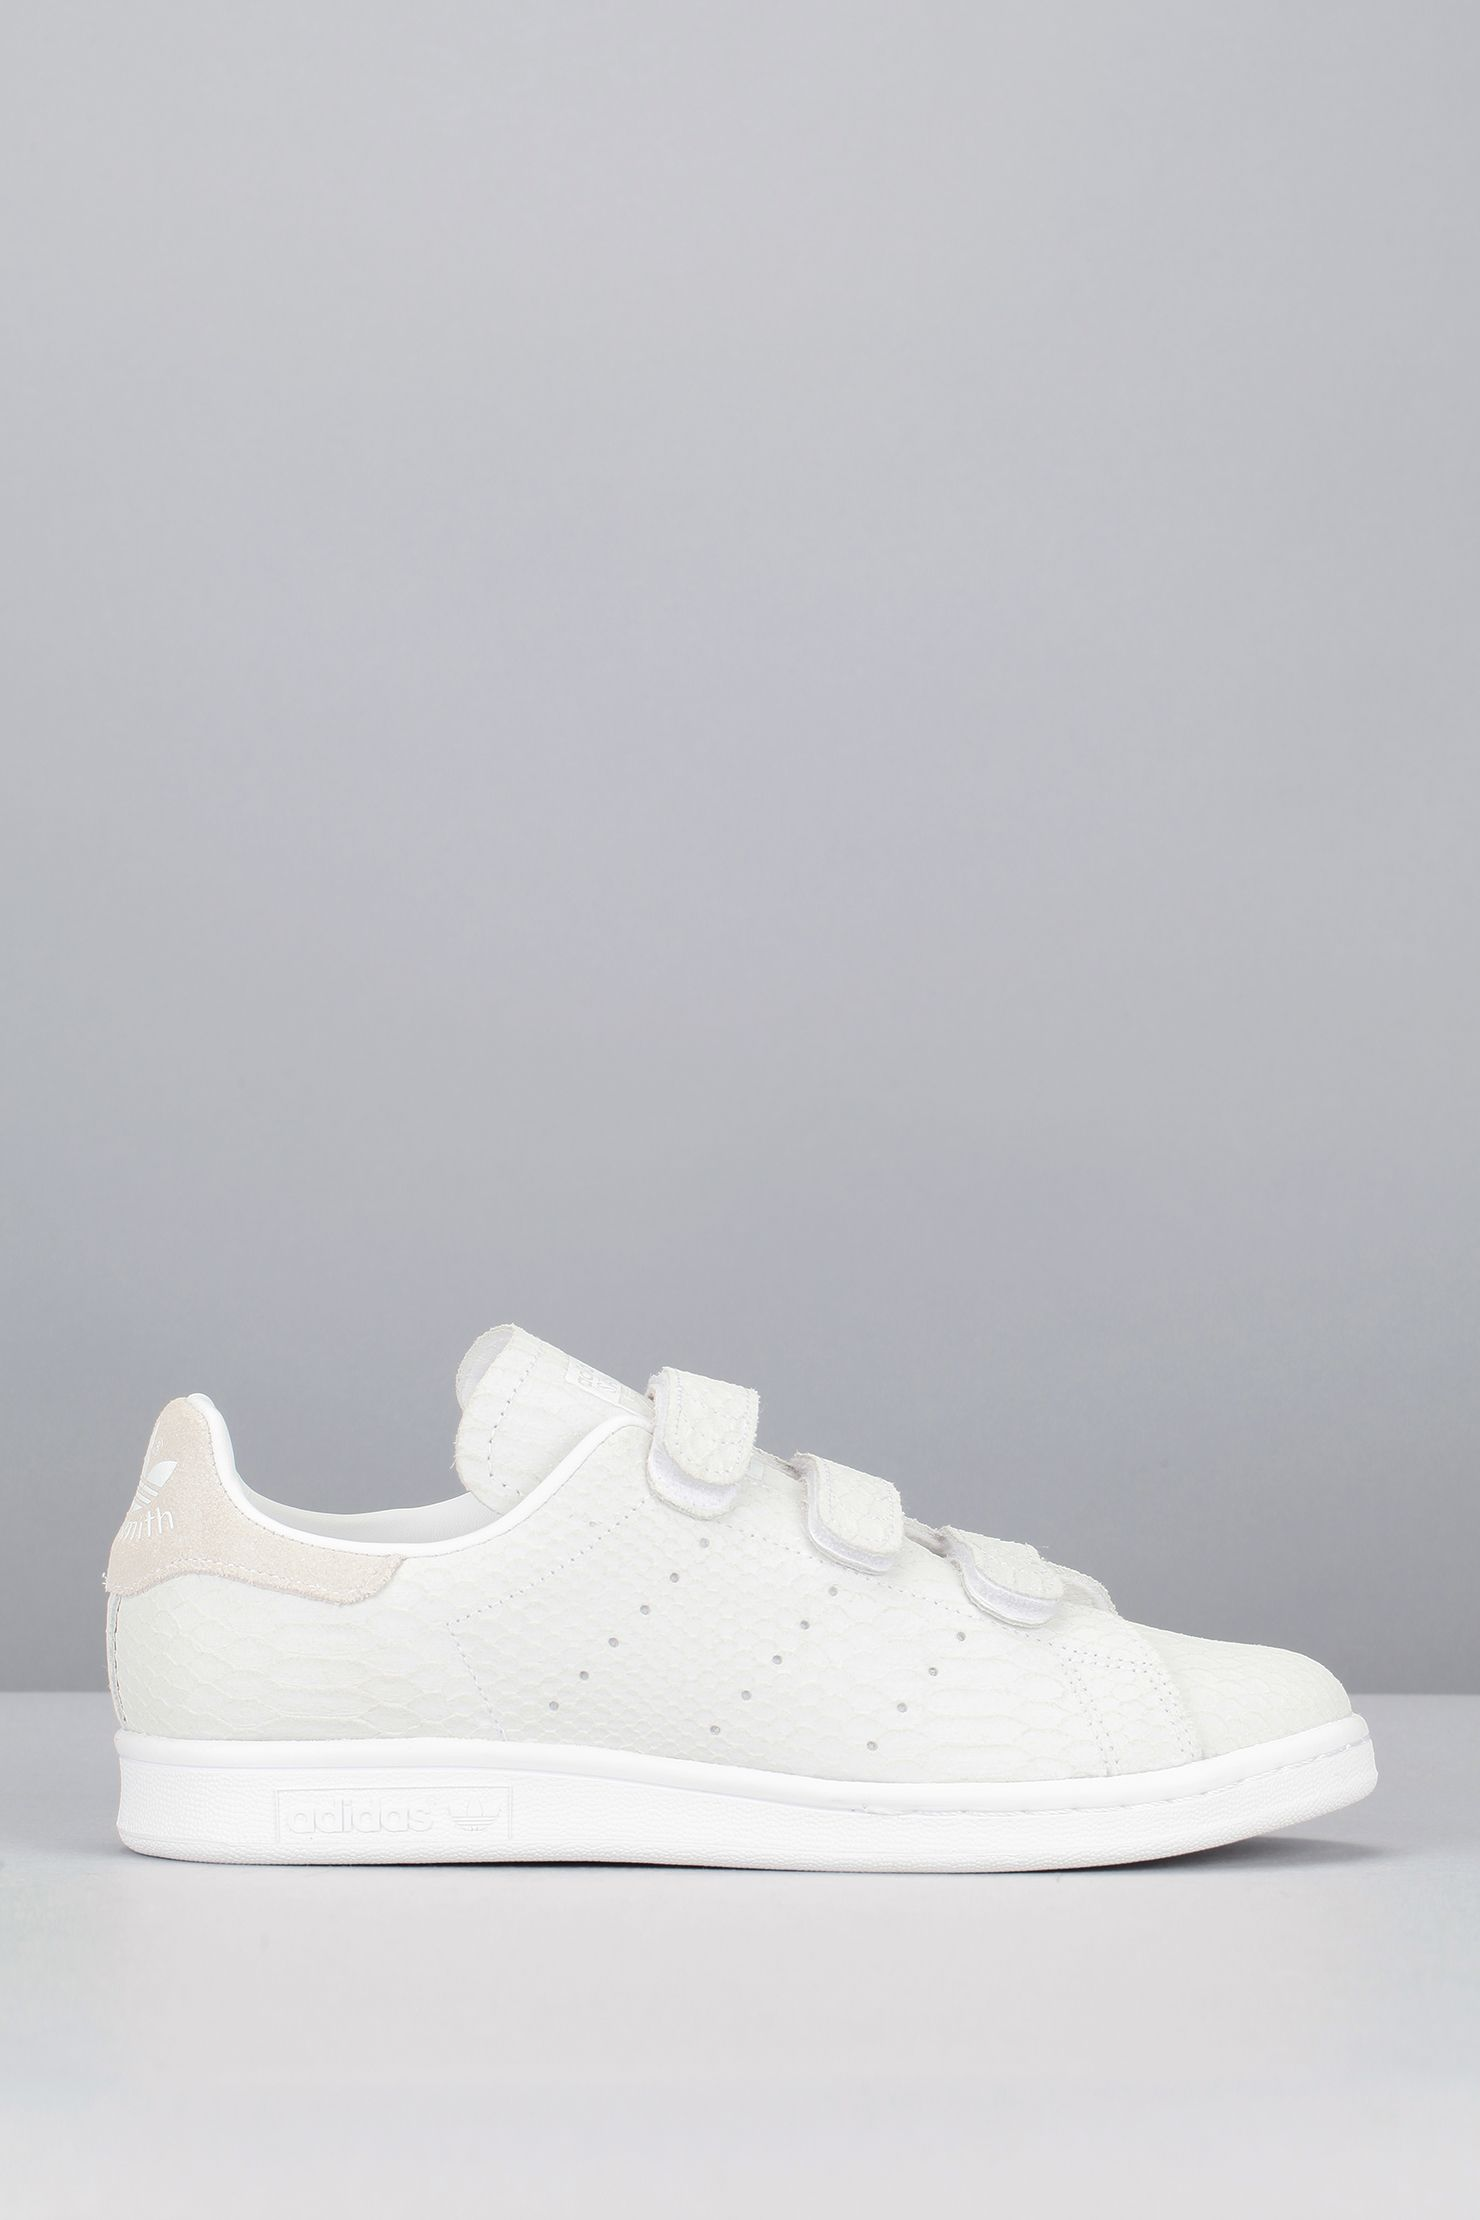 85872eebeb Trainers / Wedge trainers - s32010stan smith cf w - White / Ecru white